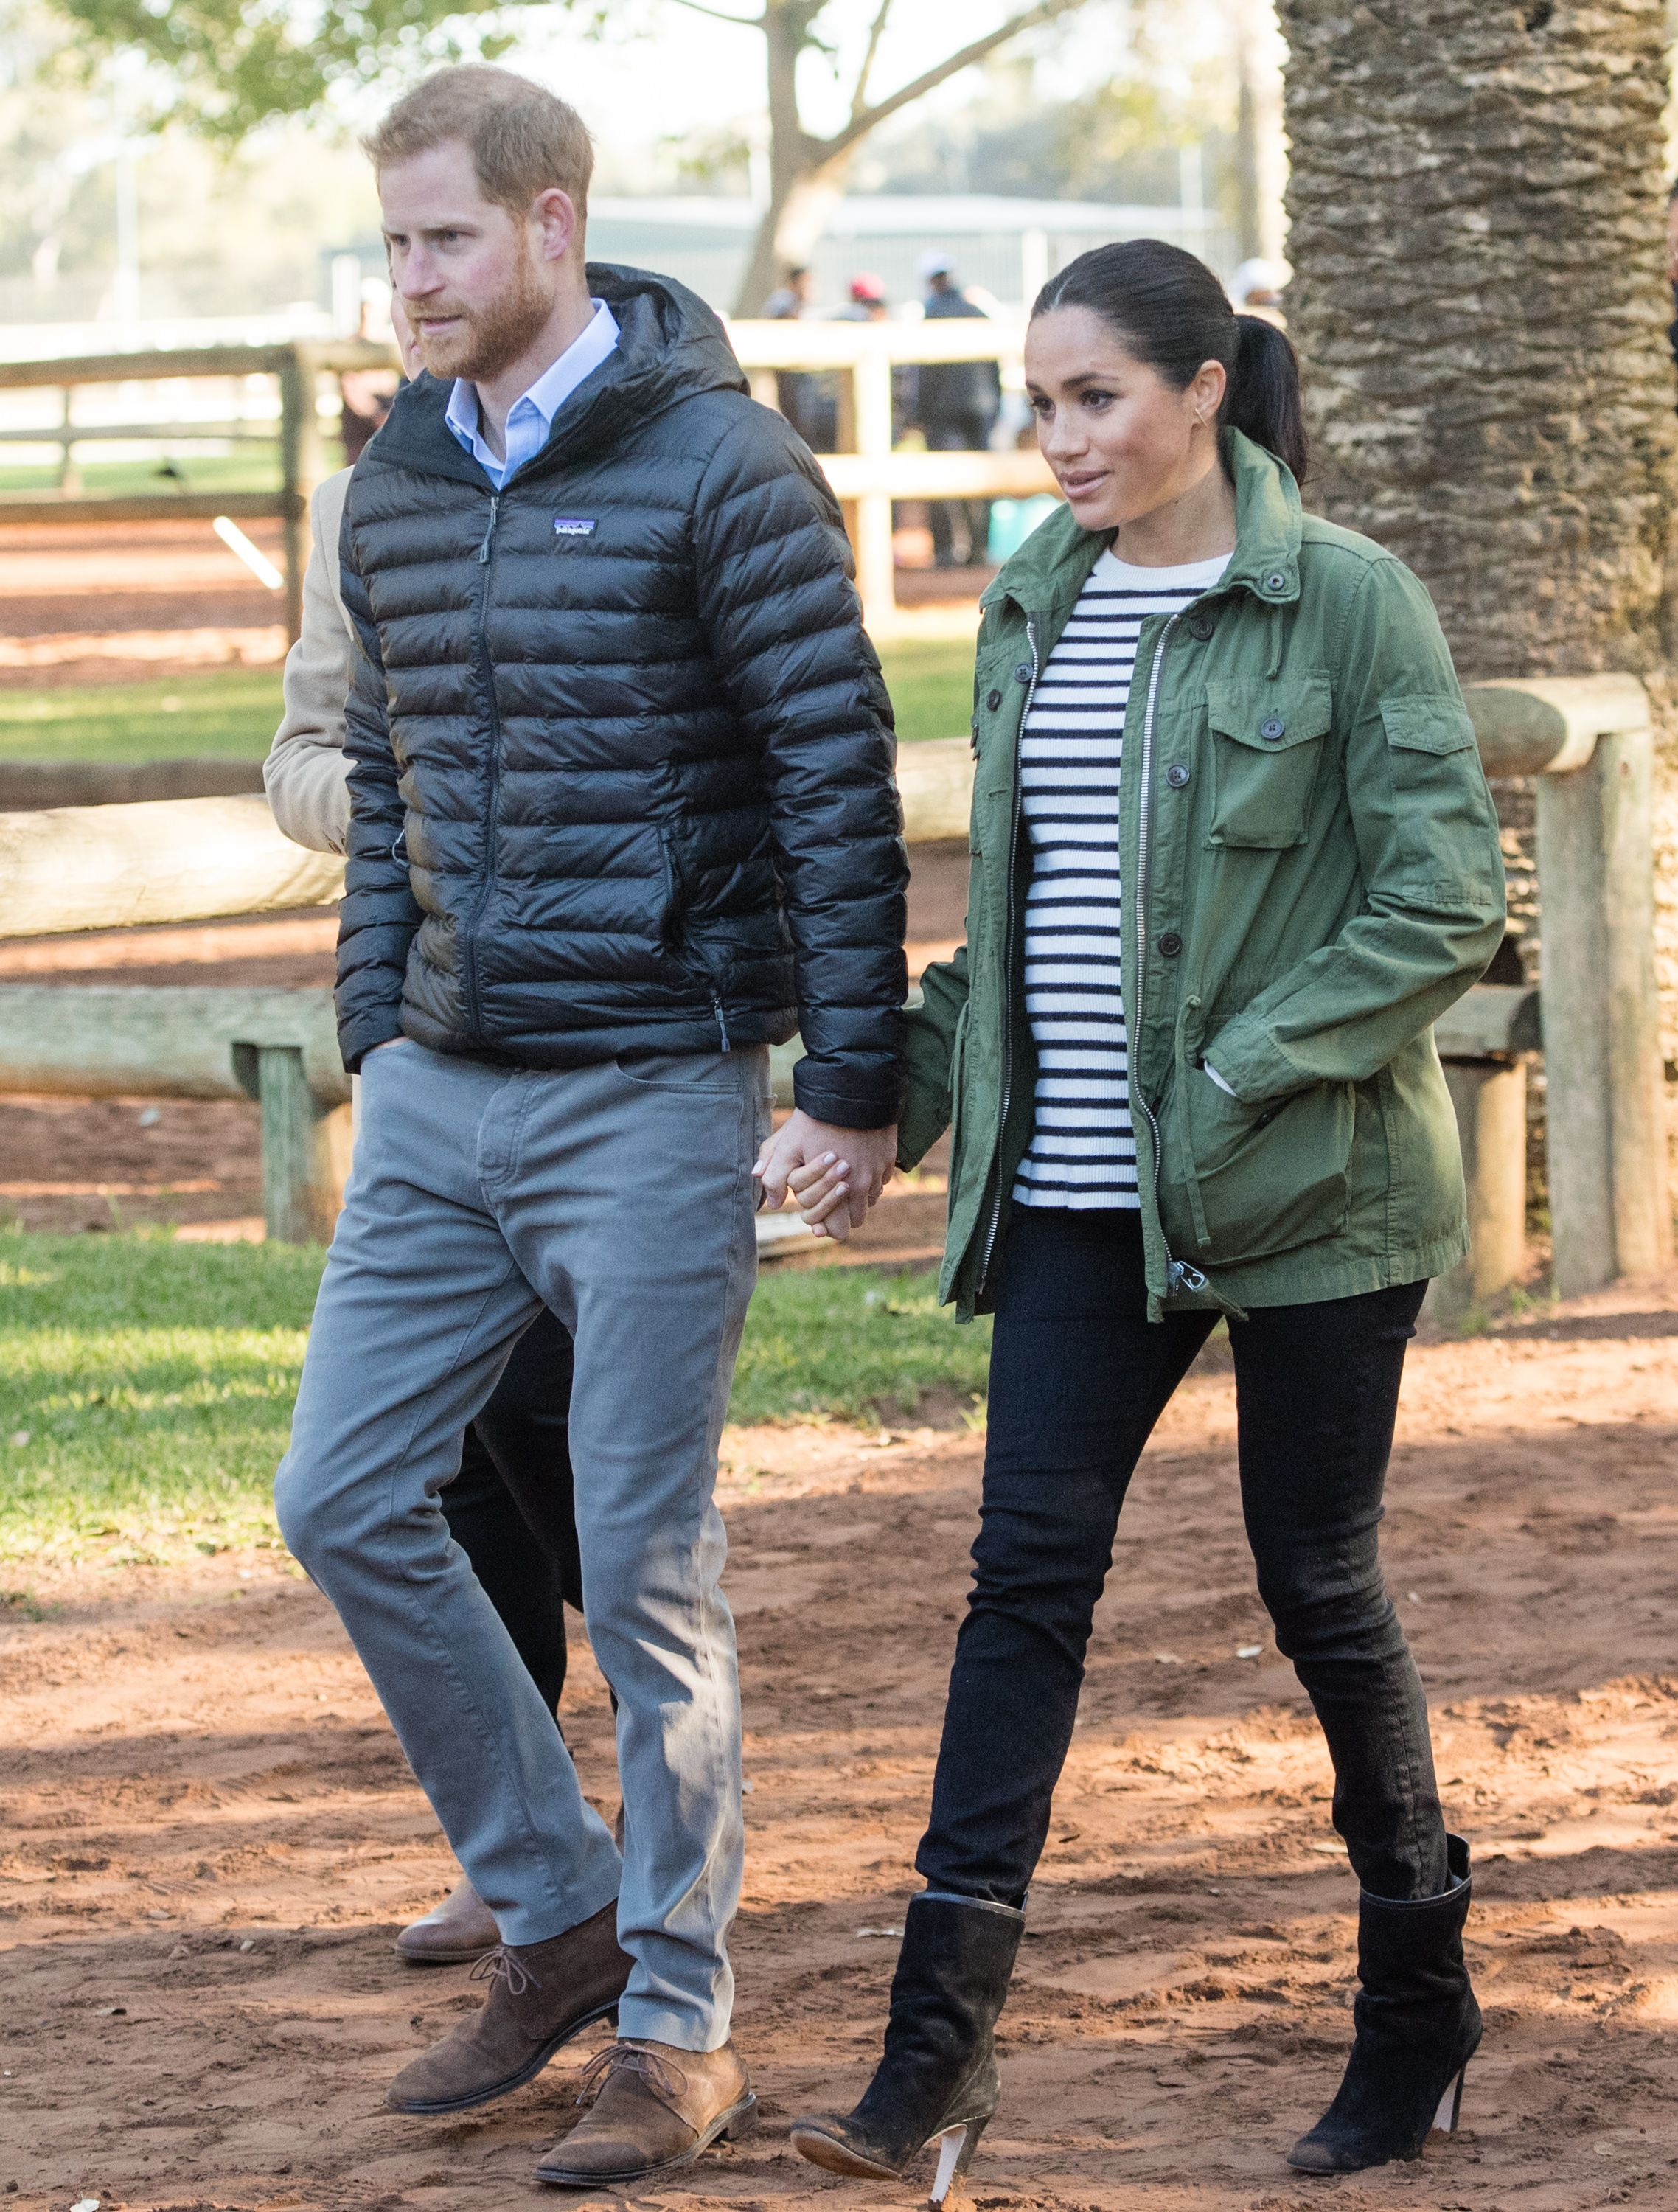 prince harry duke of sussex and meghan duchess of sussex news photo 1132077166 1551190469 1613814206091605466280